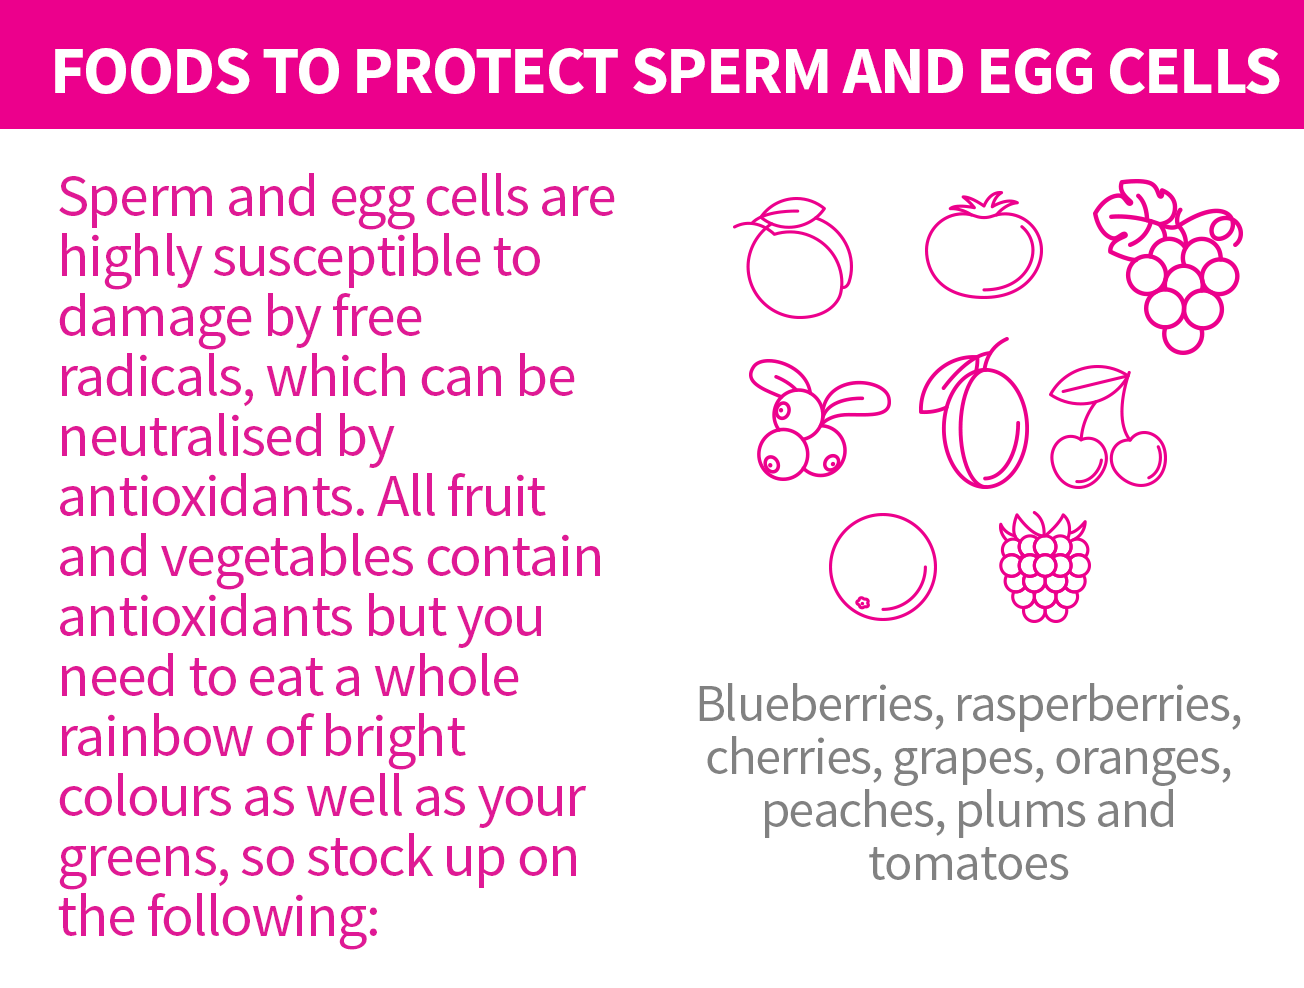 Protect sperm and egg cells